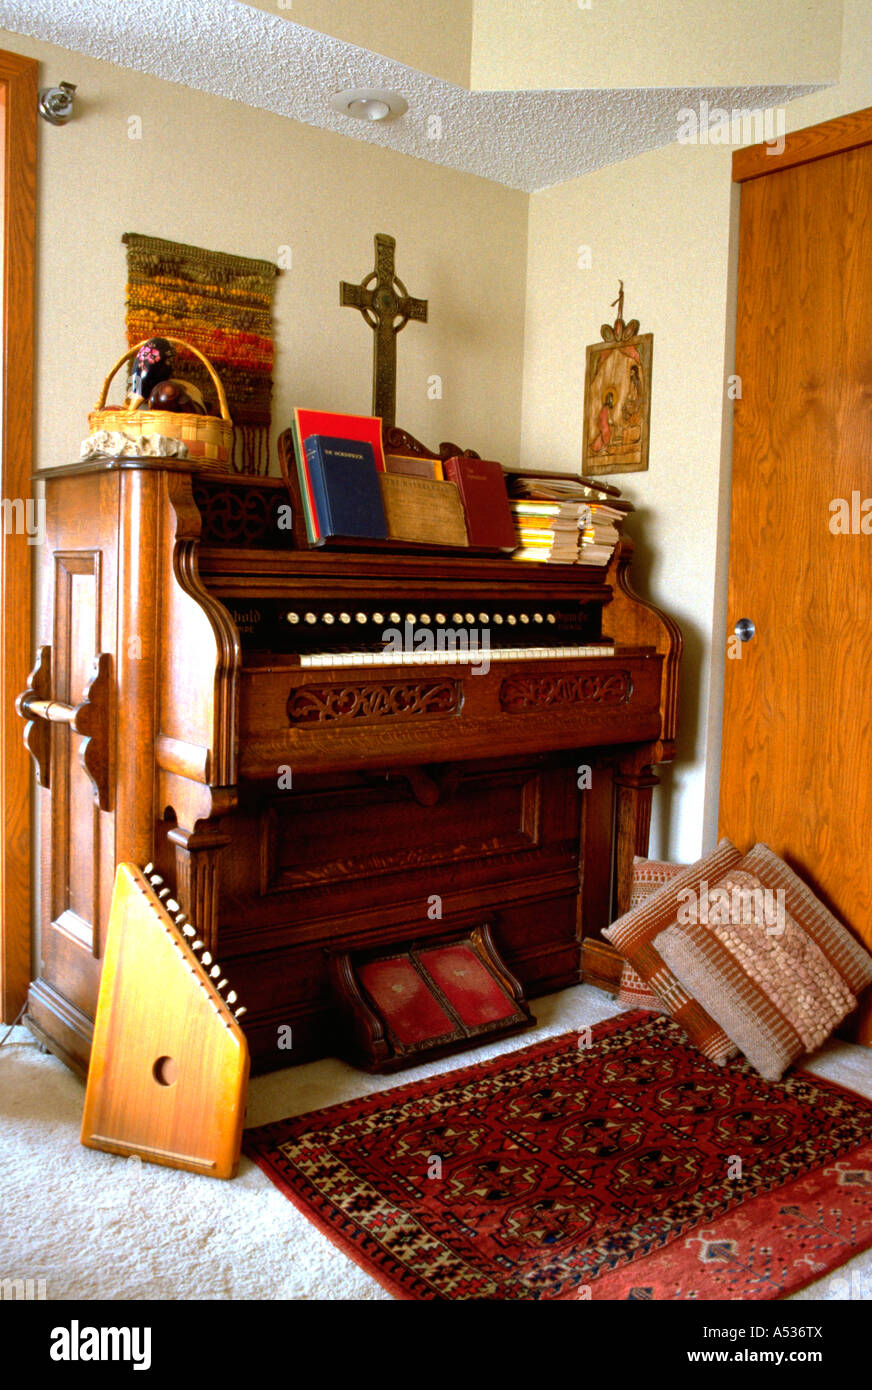 Antique pump organ and zither in the home. Minneapolis Minnesota USA - Stock Image